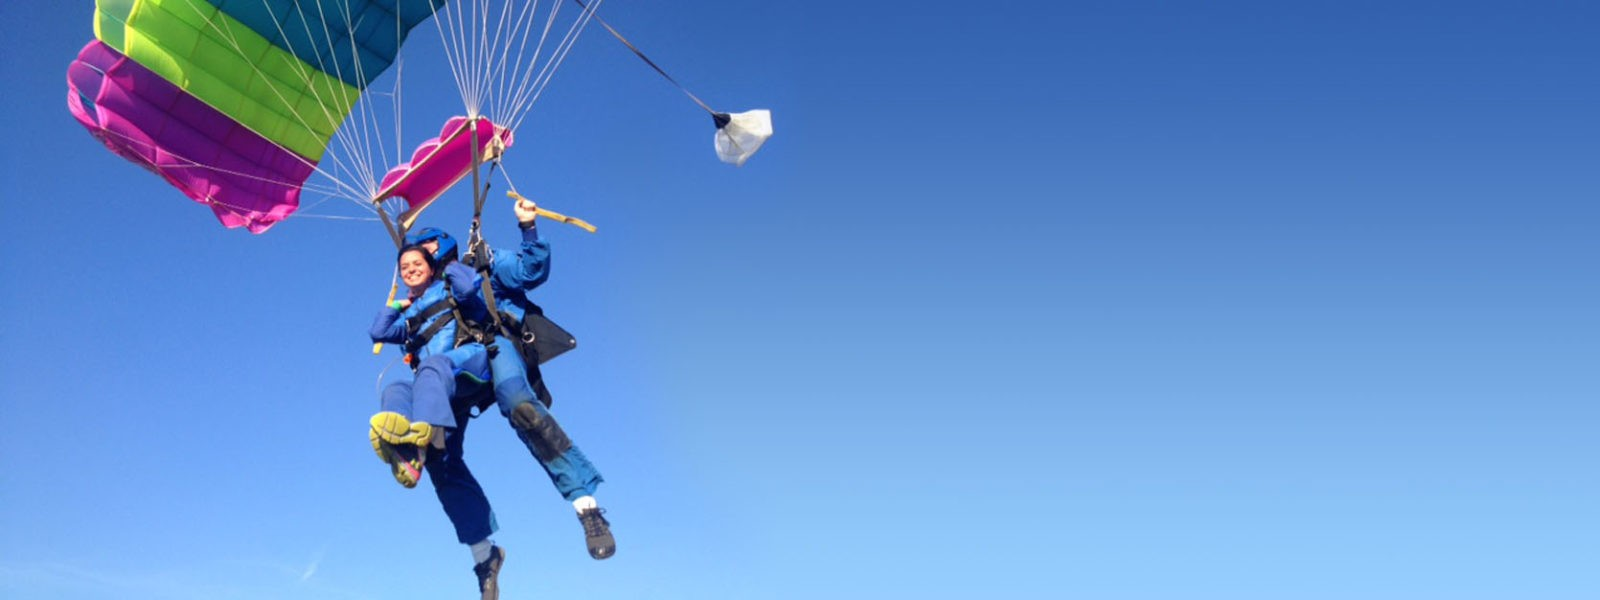 Skydiving In Va Beach